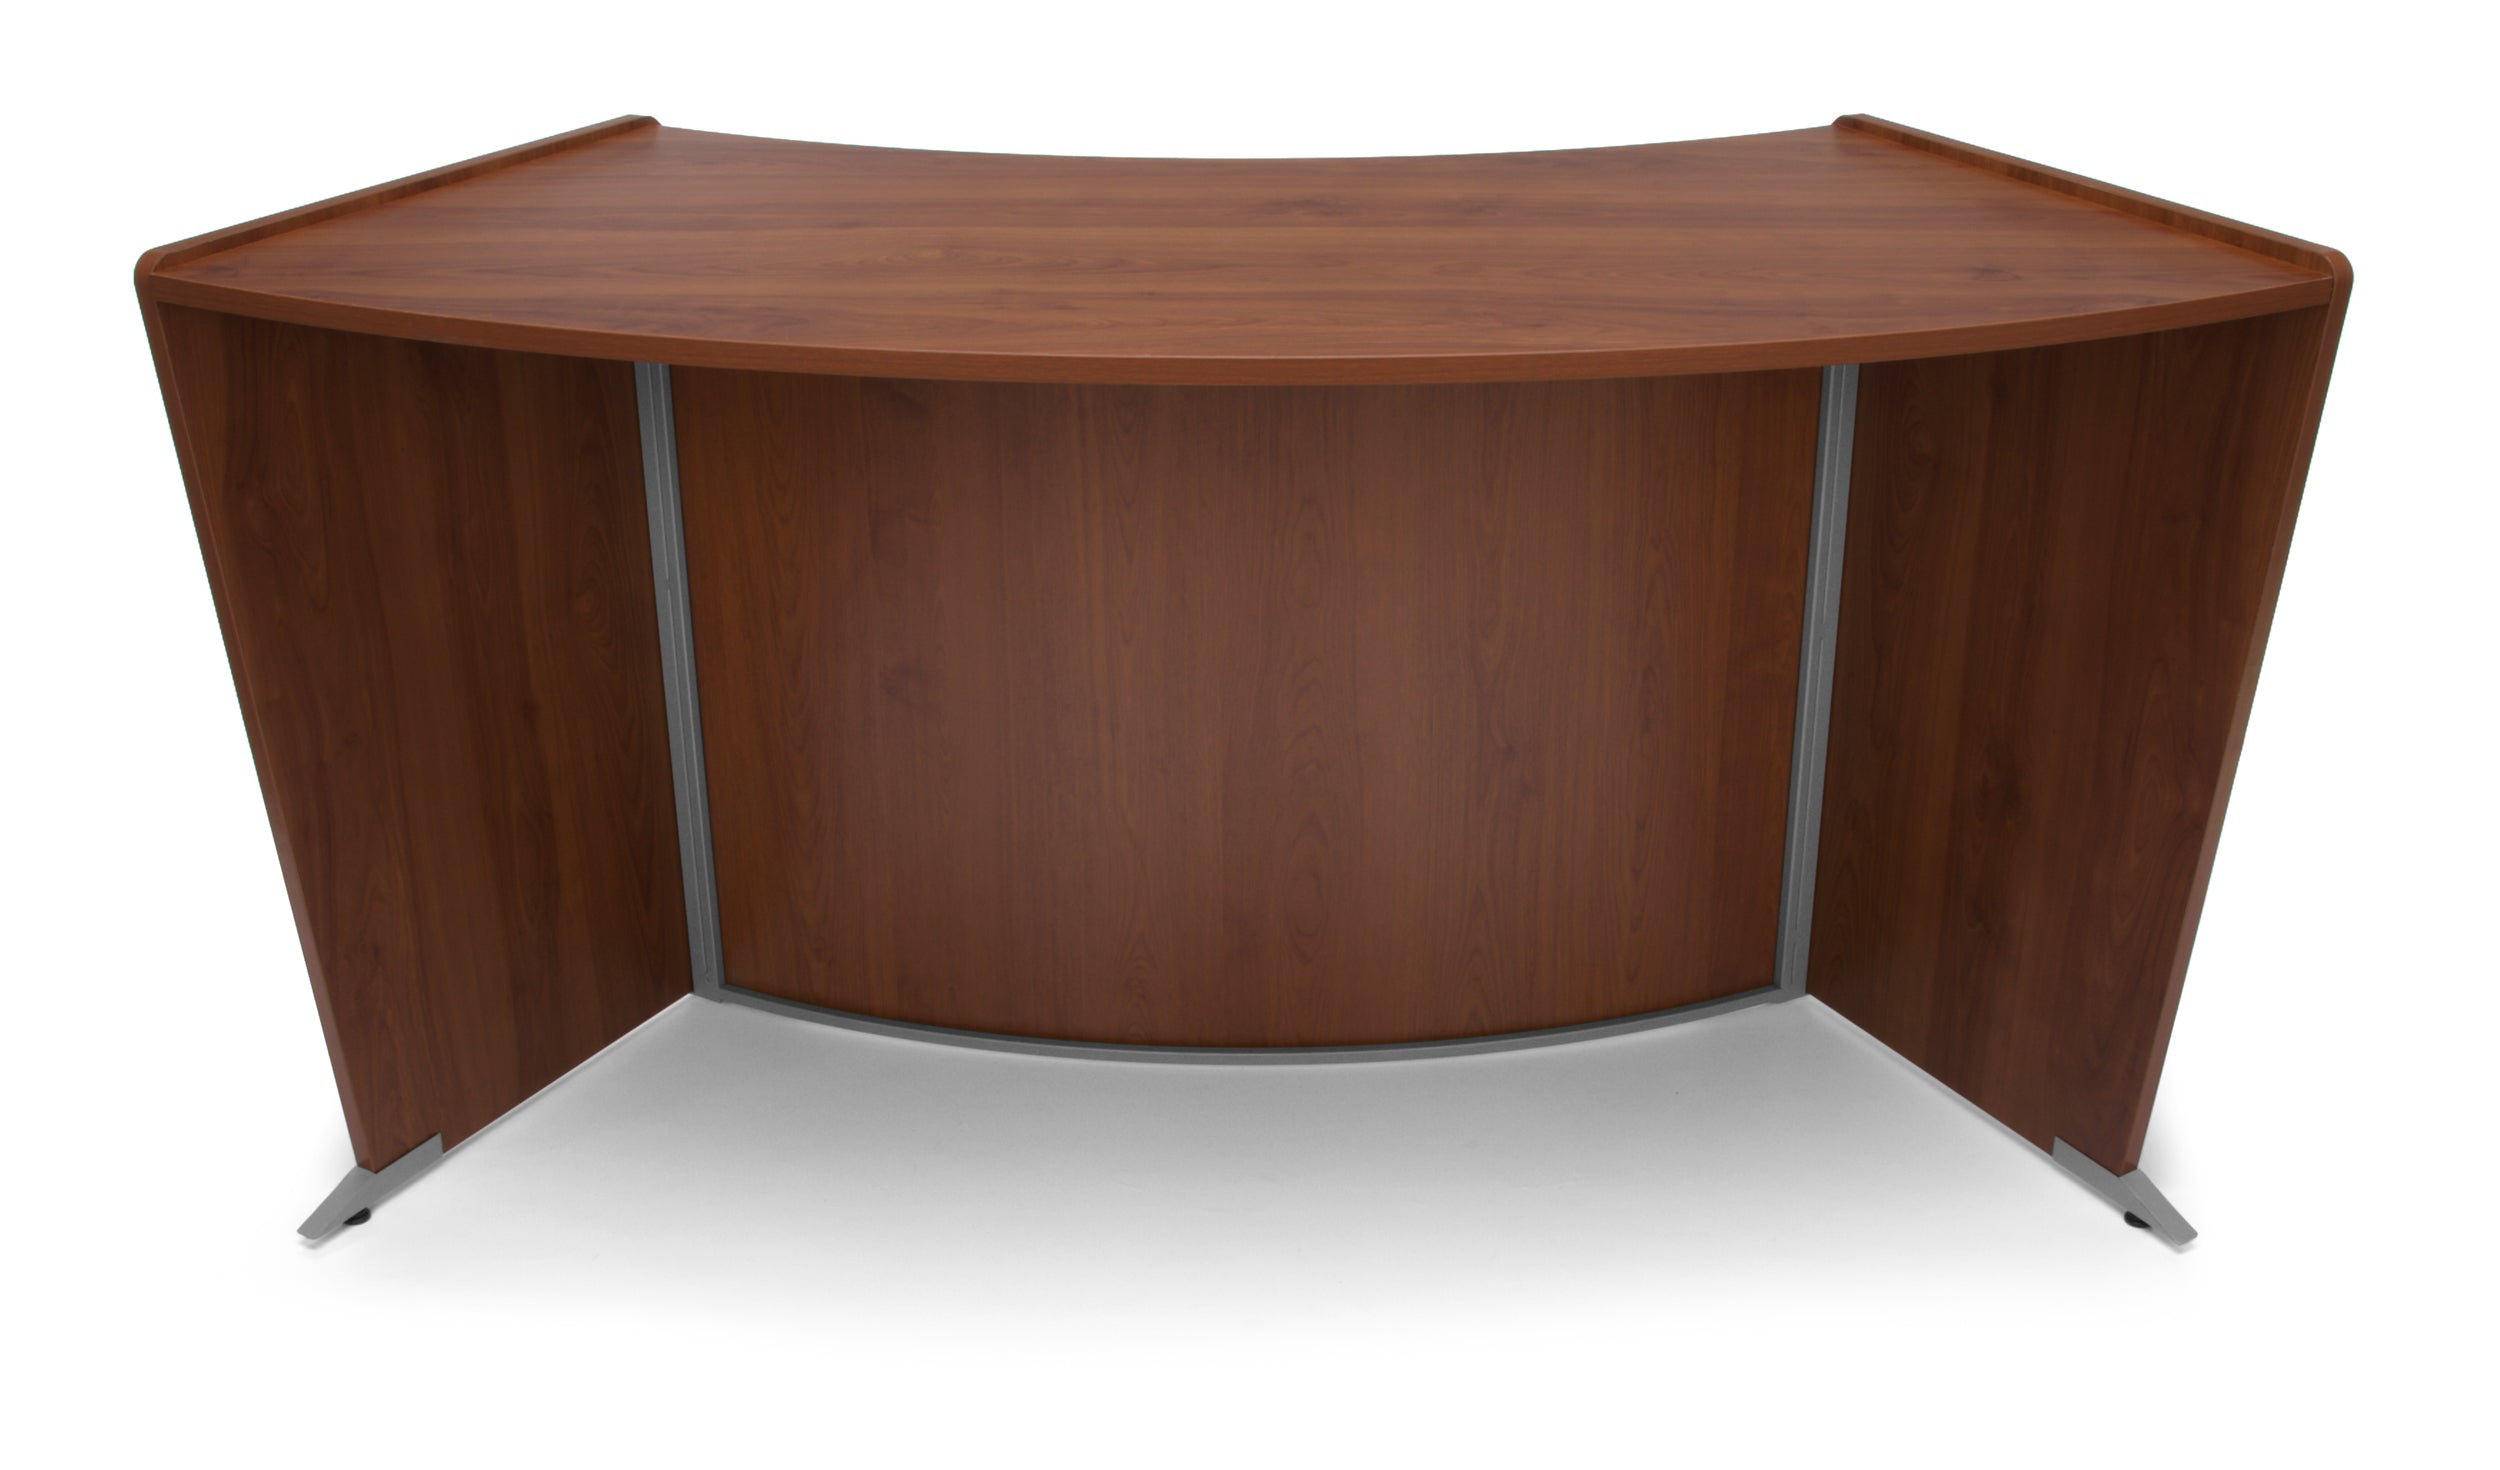 Marque Series ADA / Wheelchair Accessible Curved Reception Station